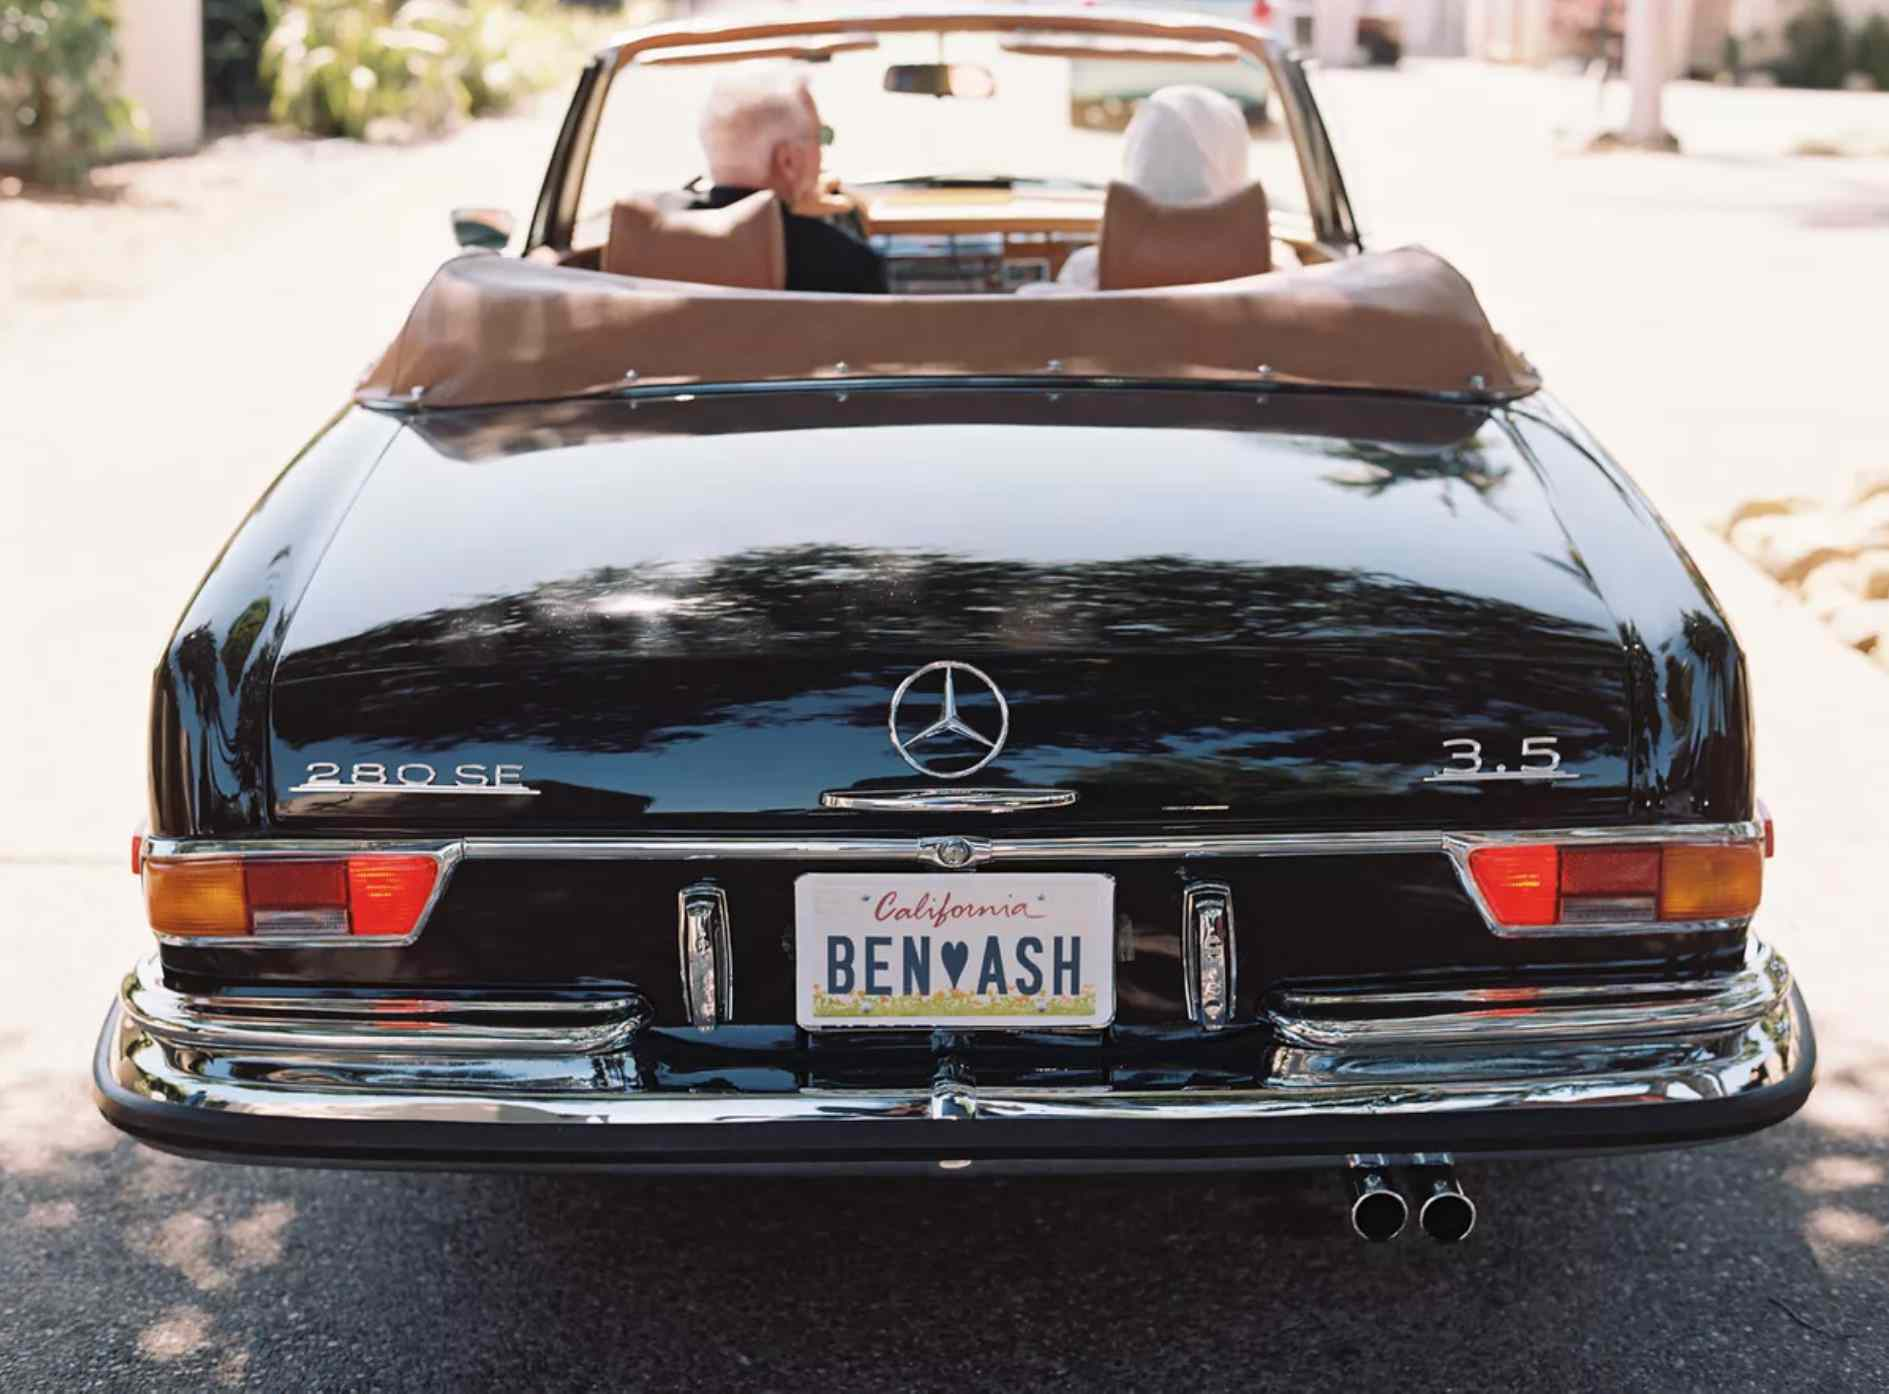 Mercedes convertible with vanity plates